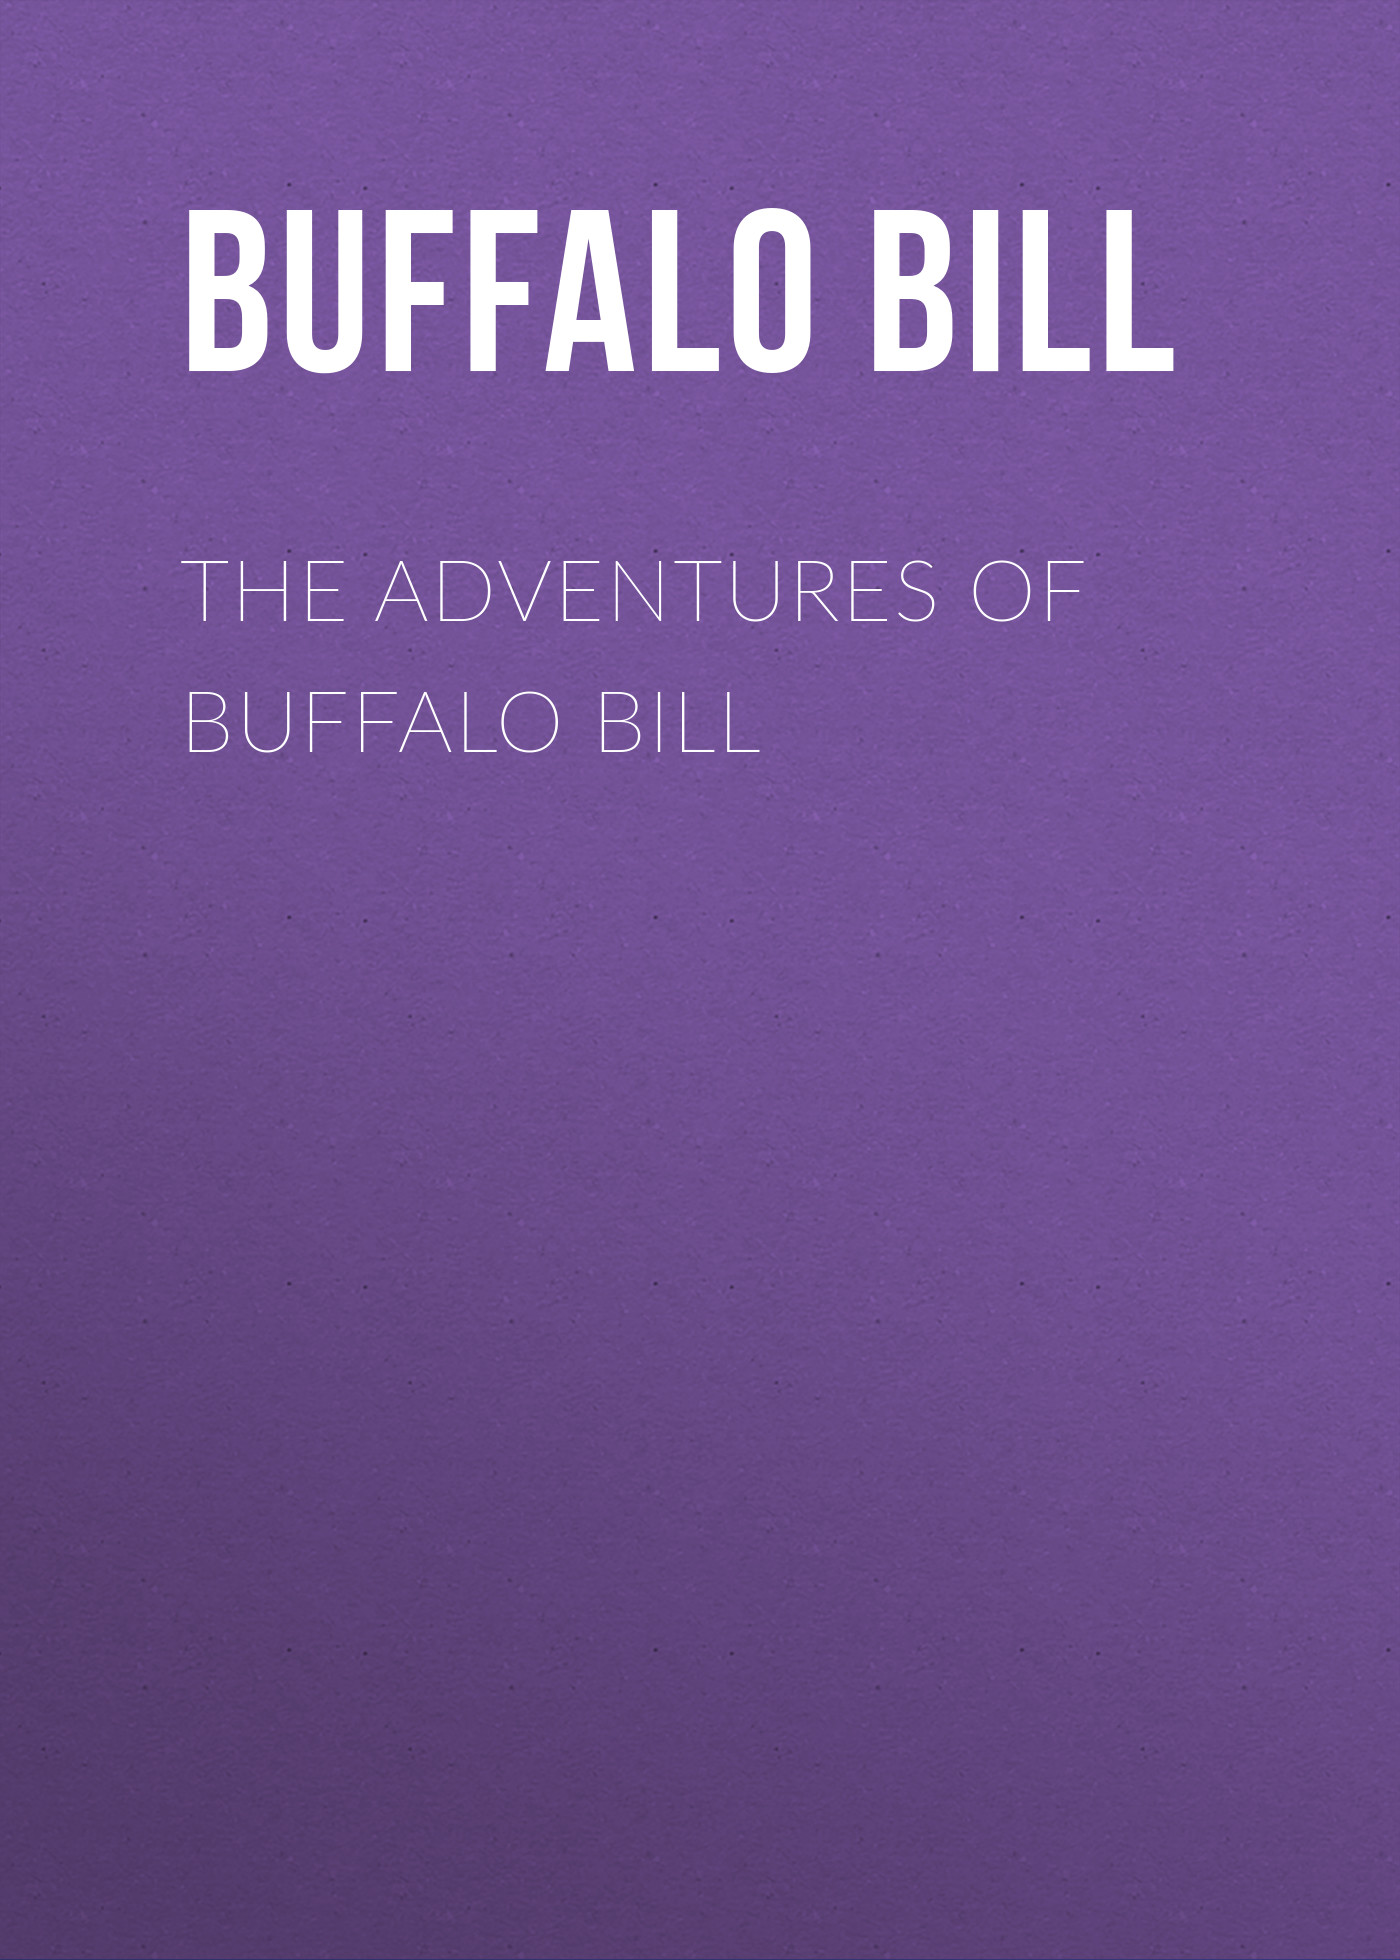 Buffalo Bill The Adventures of Buffalo Bill creative slr camera style usb 2 0 flash drive black 32gb